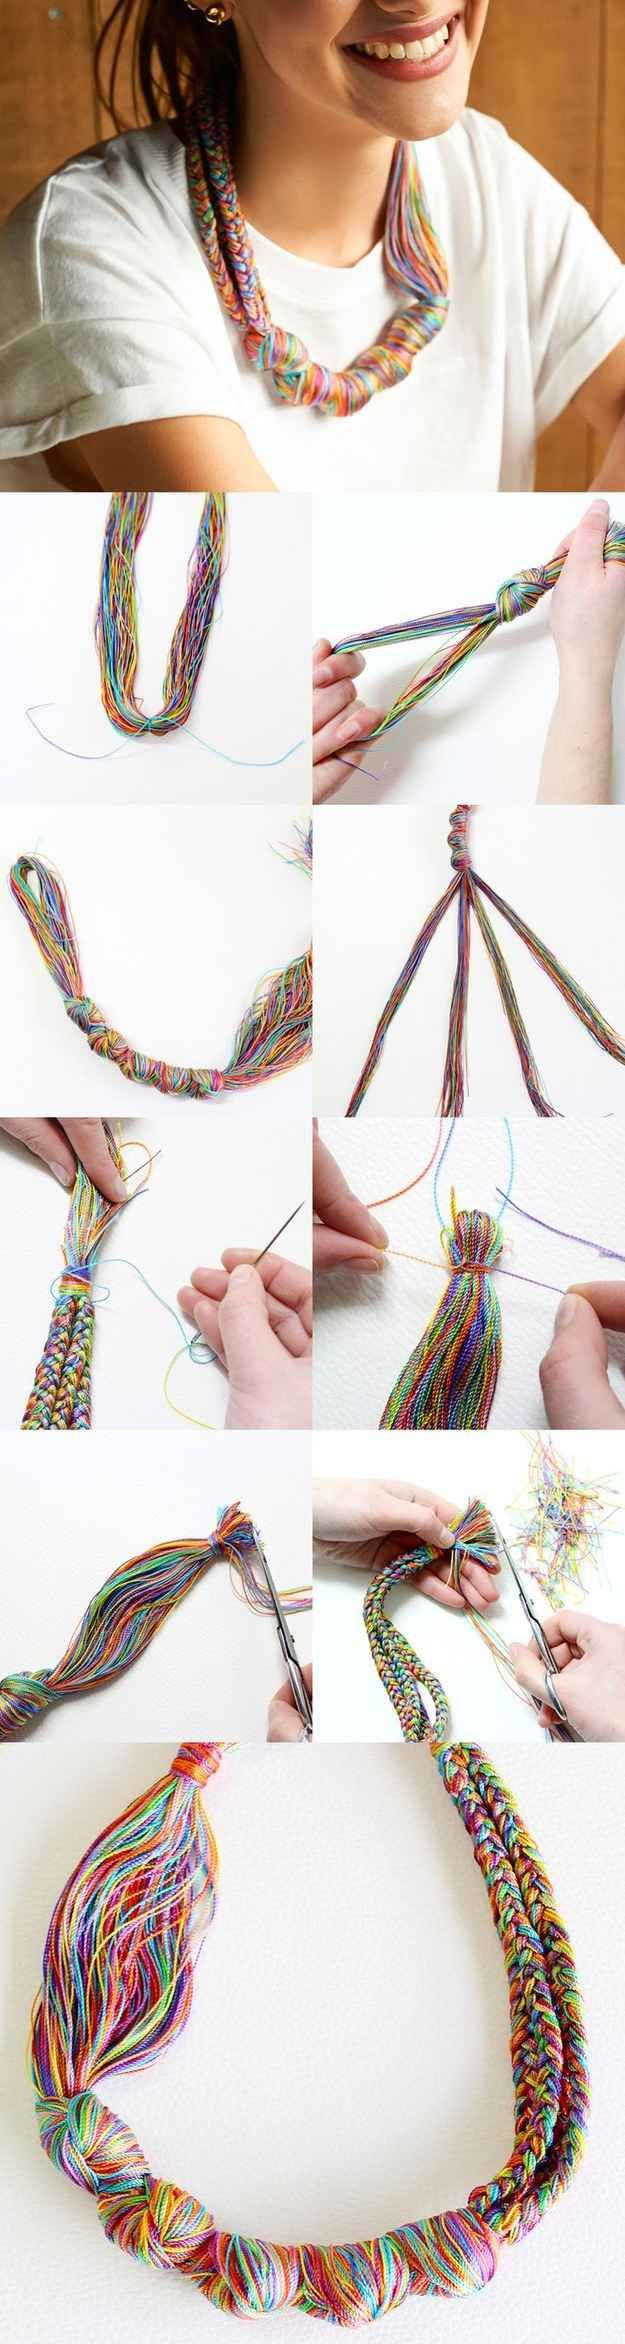 Embroidery Thread Necklace